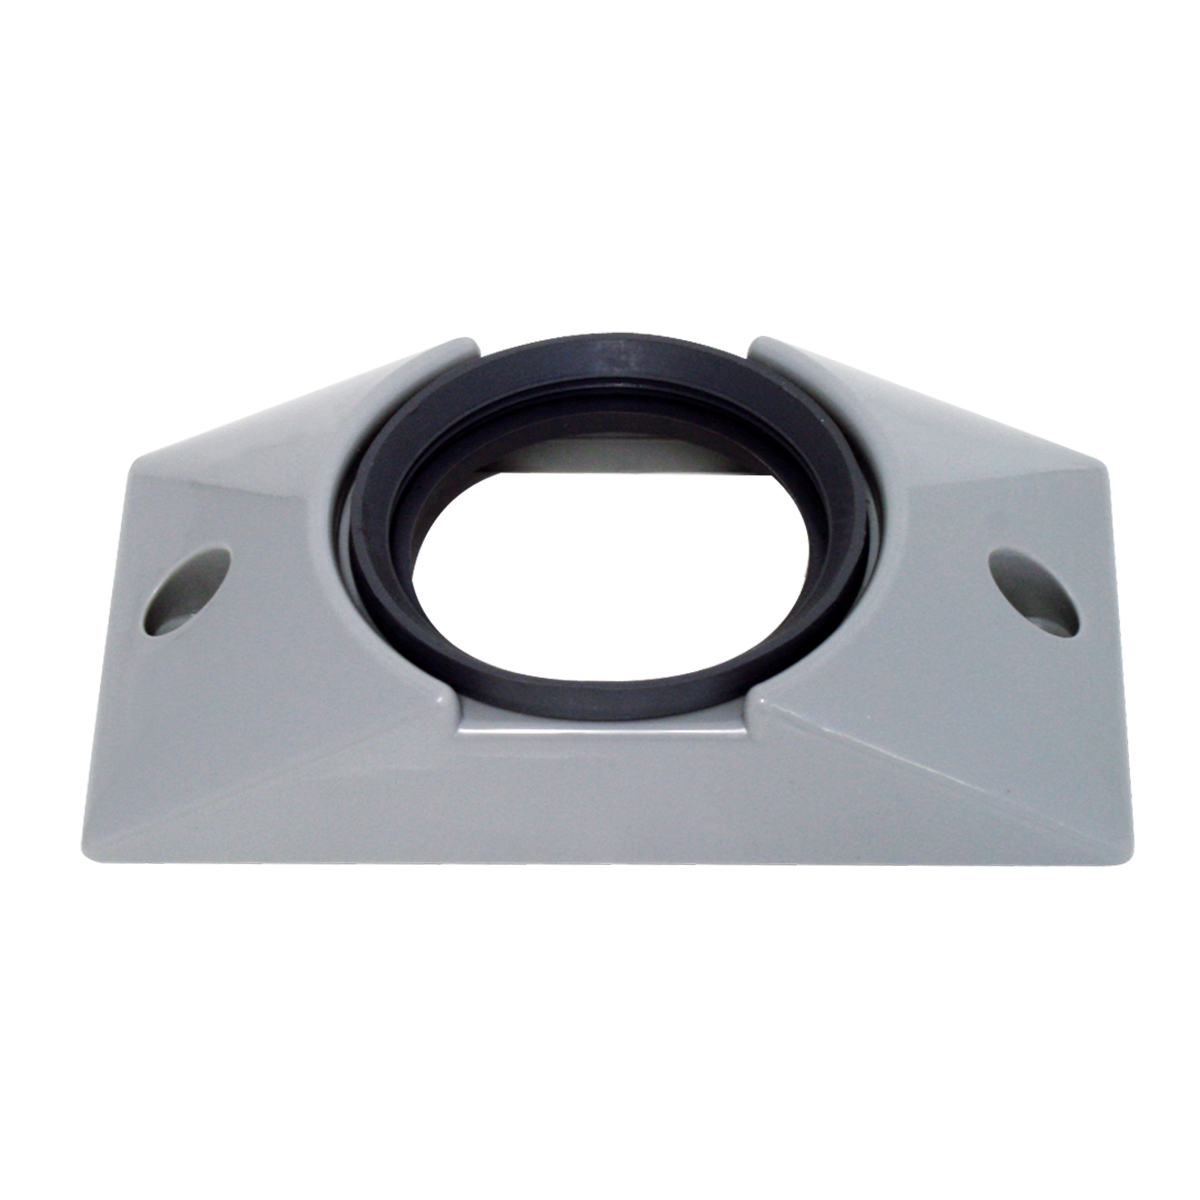 "82627 Gray Plastic Mounting Bracket with Grommet for 2-1/2"" Round Light"